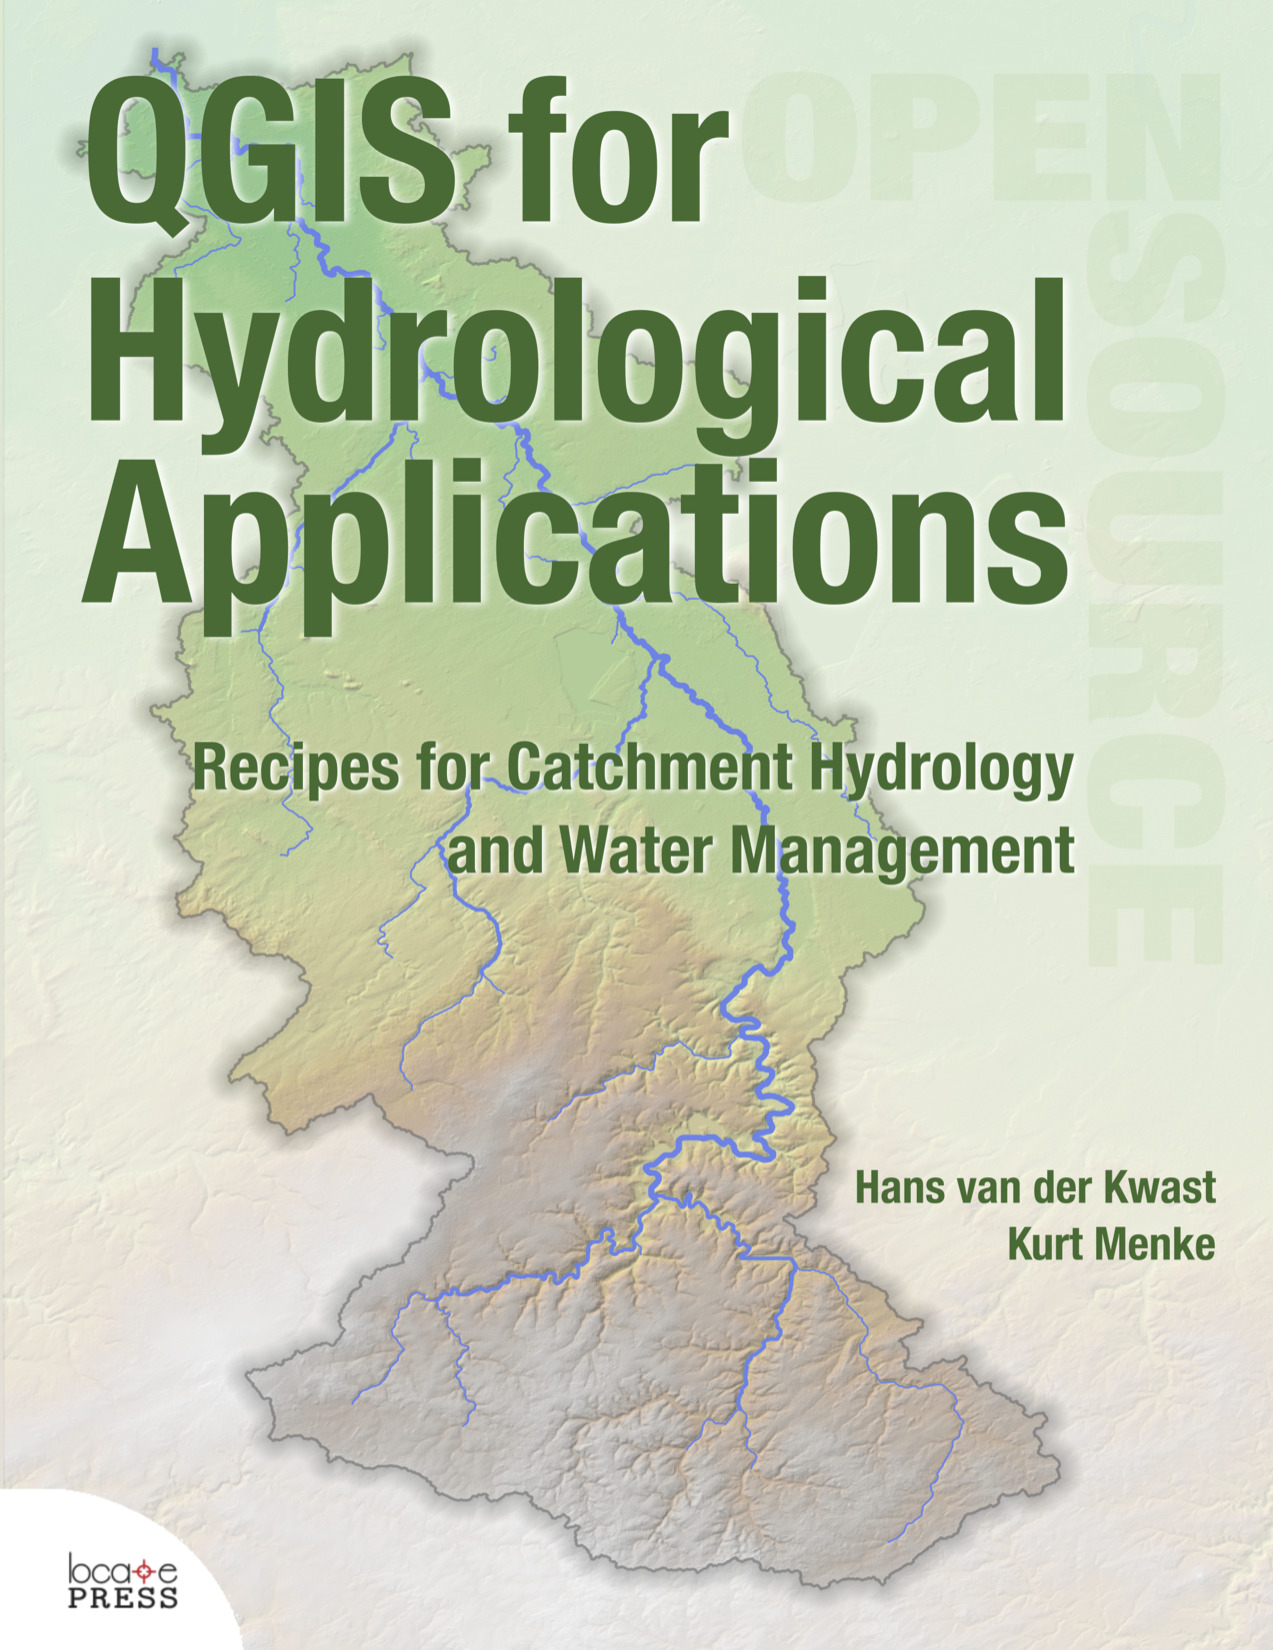 QGIS for Hydrological Applications - Recipes for Catchment Hydrology and Water Management by Hans van der Kwast and Kurt Menke